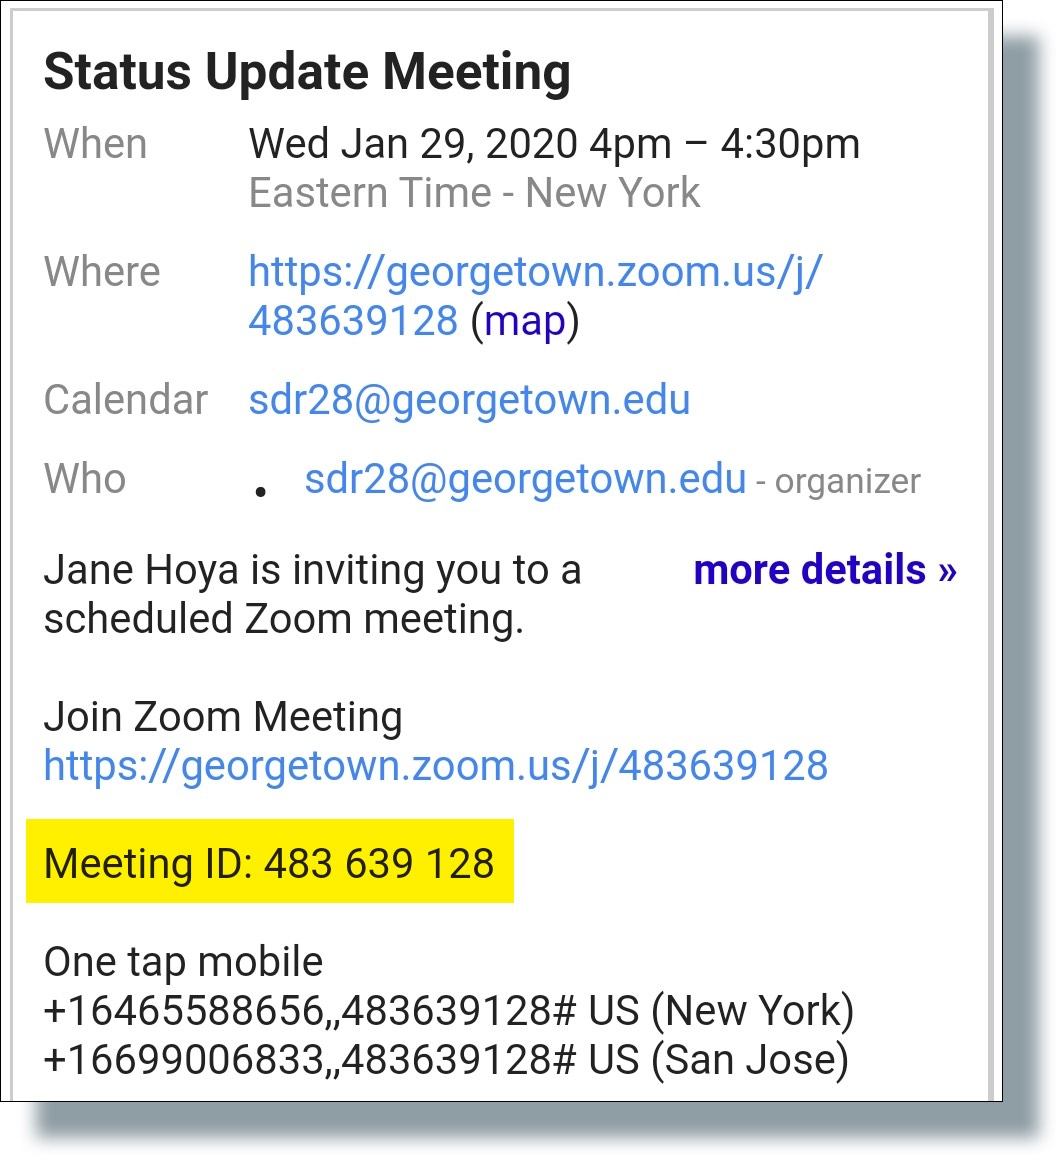 Zoom Meeting ID in invite email